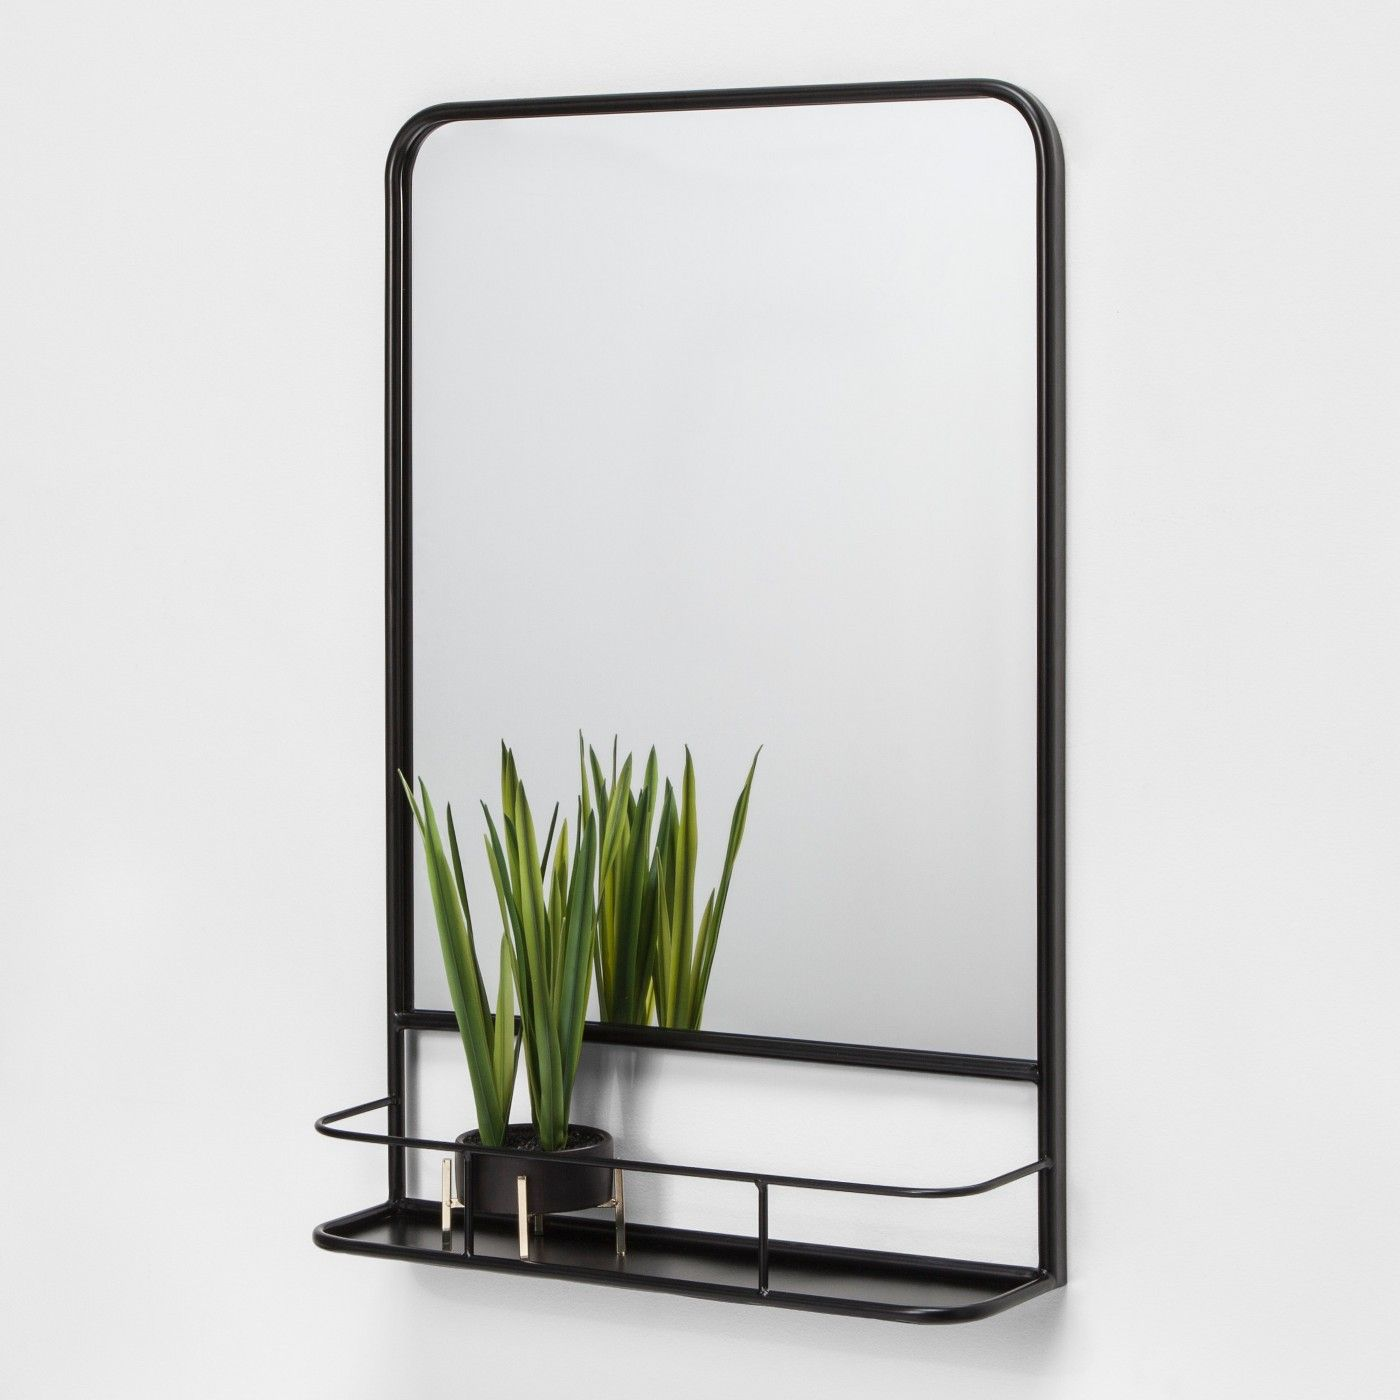 20 X30 Pharmacy Mirror With Metal Shelf Black Threshold Metal Shelves Bathroom Decor Modern Mirror Wall